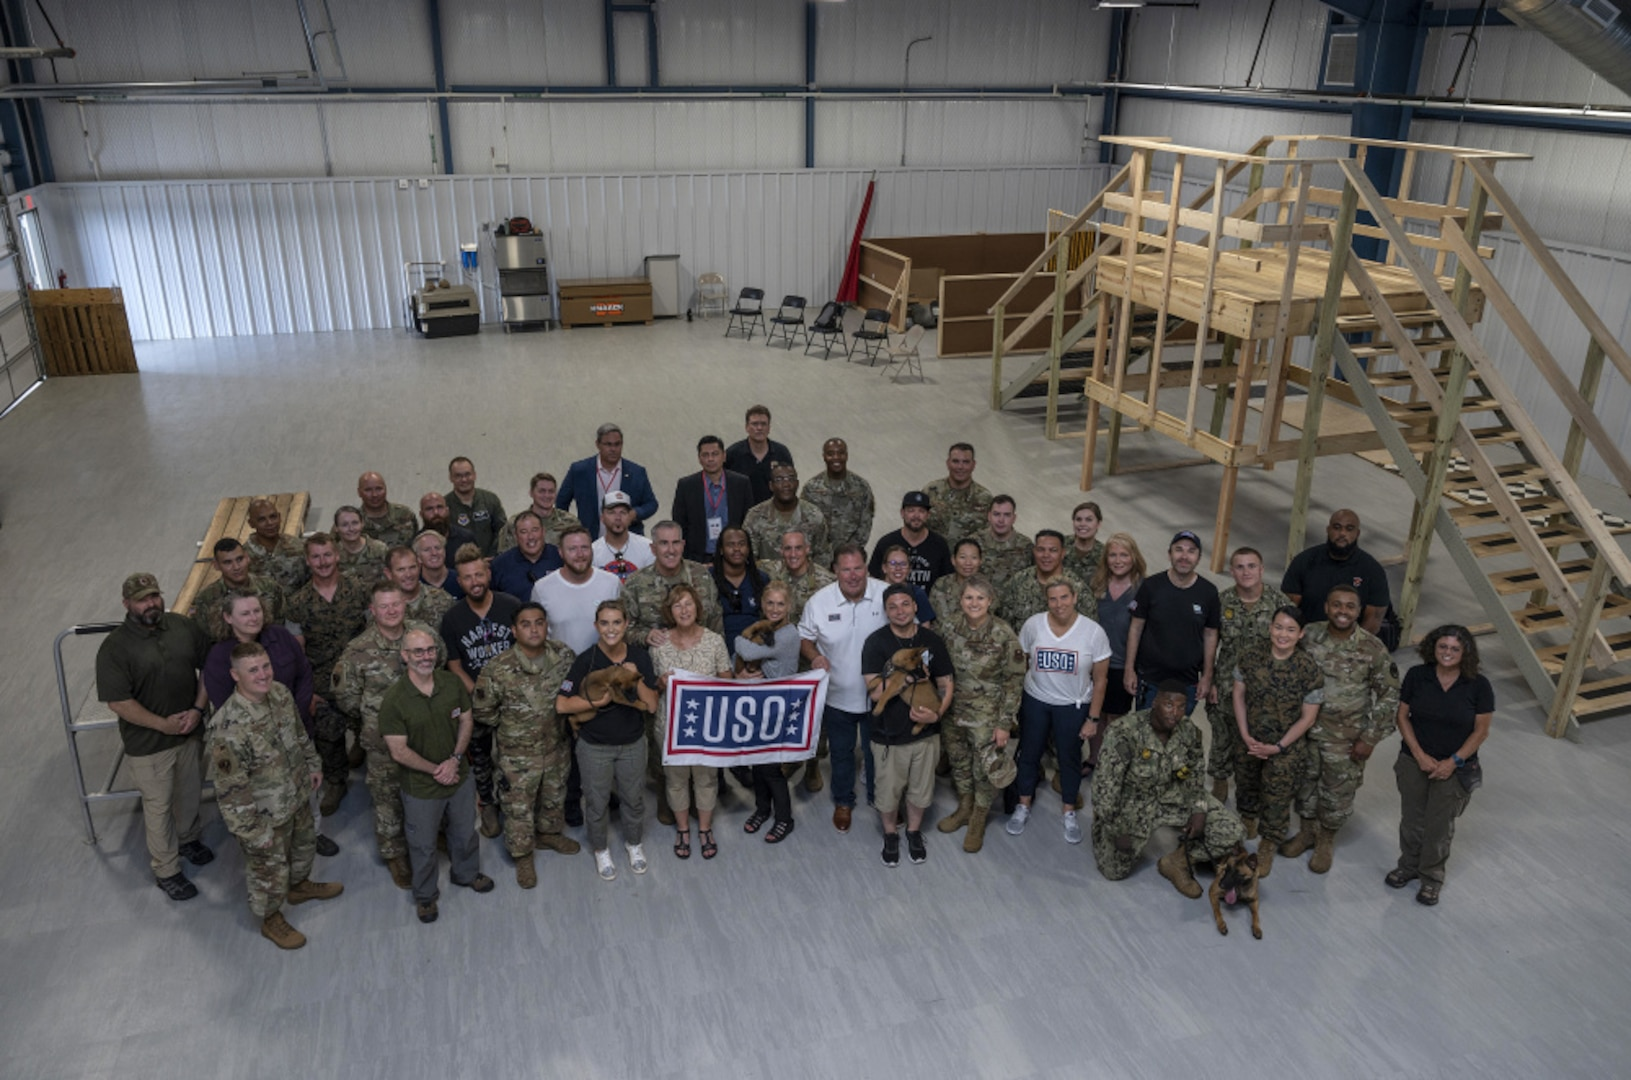 A group photo of military and civilian members during the USO Tour at Joint Base San Antonio.